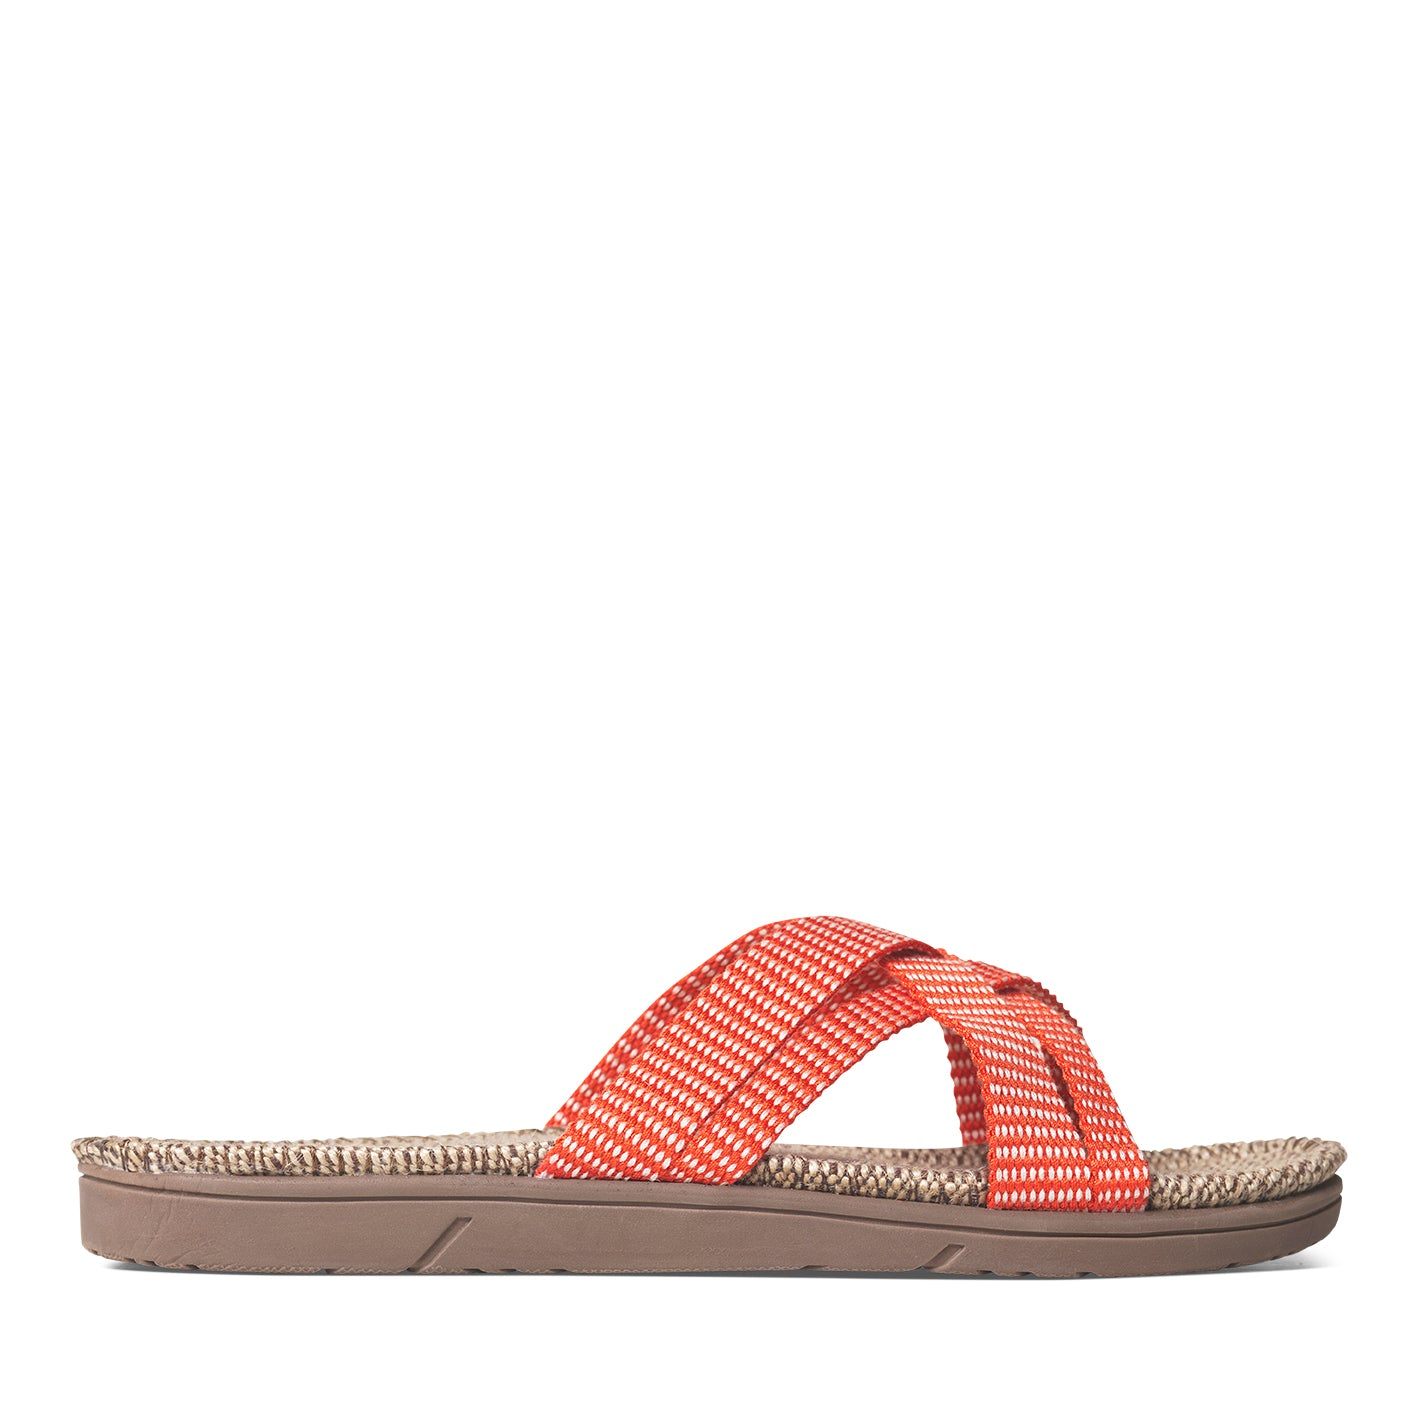 buy Shangies by Stilov - Sunset Orange online - VillaC